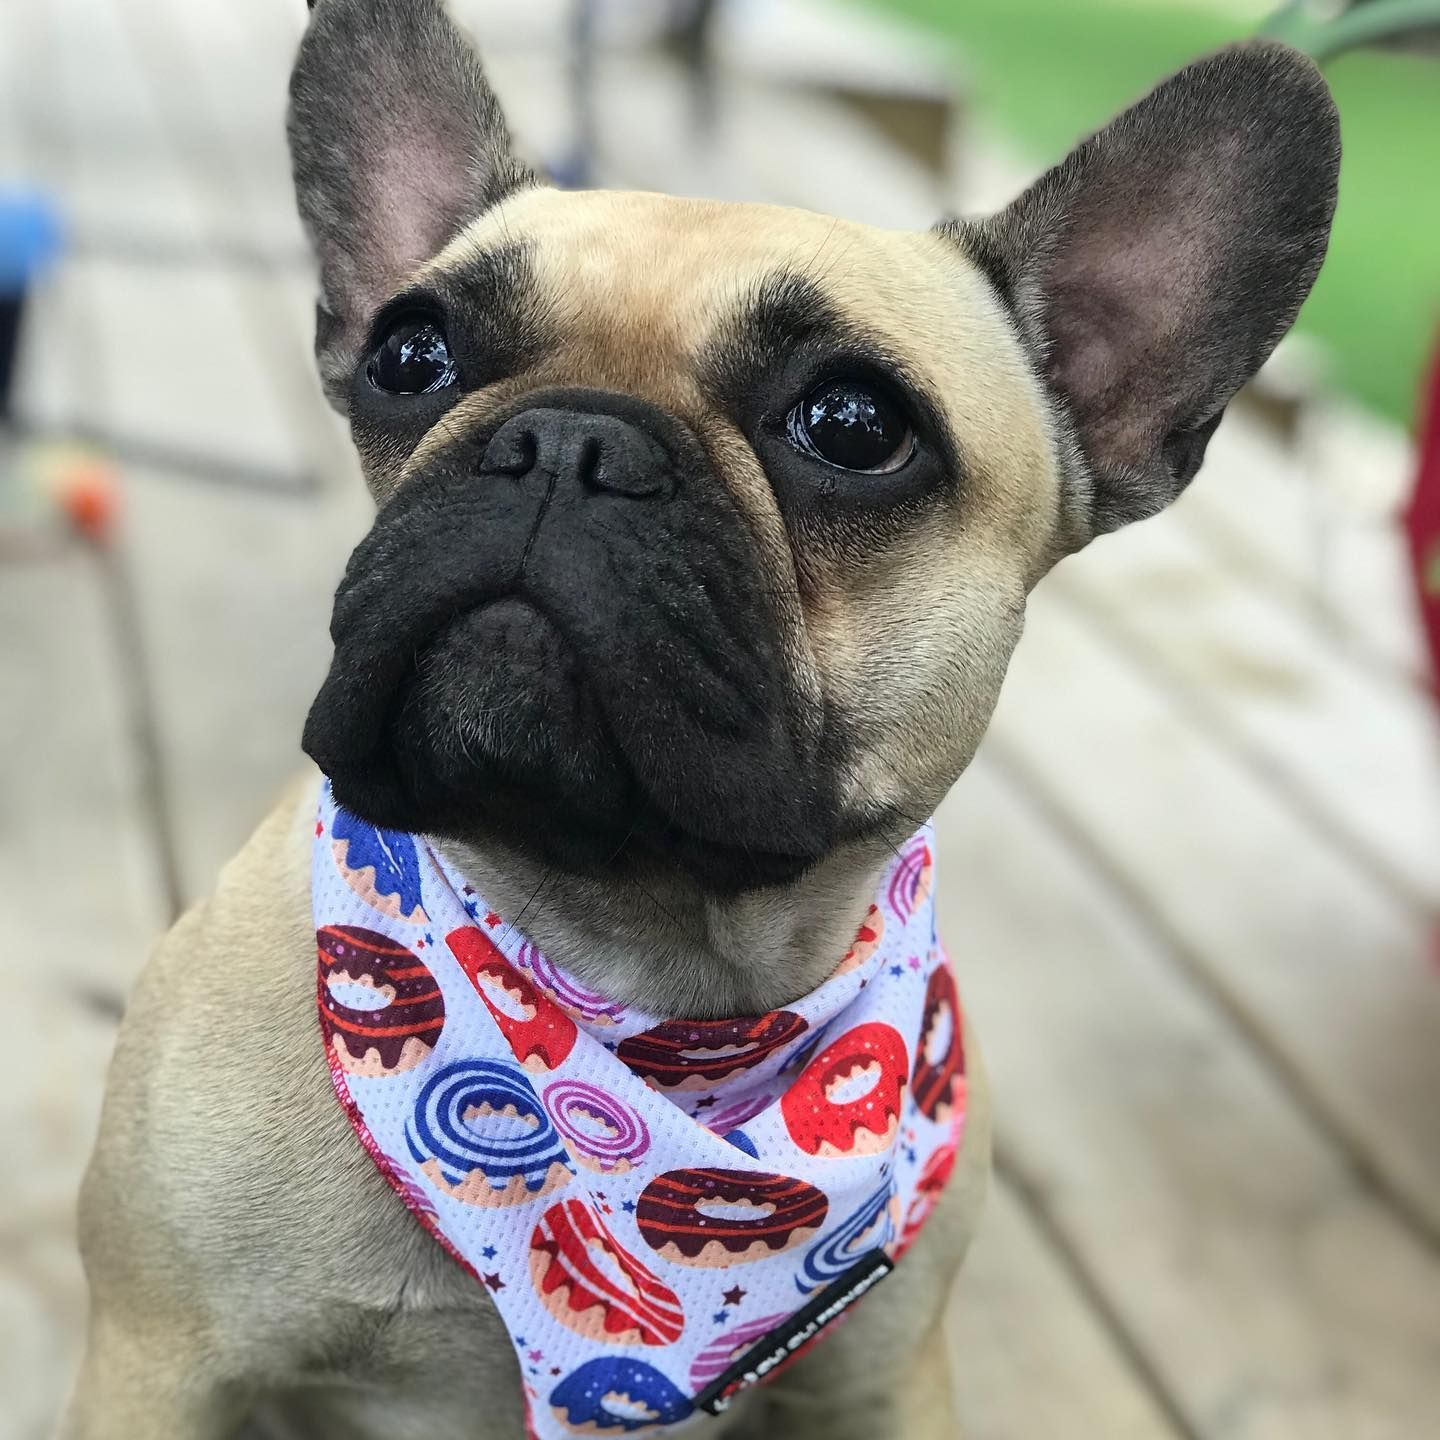 Who's ready for some donuts?  🍩  📷: @frenchie_mama_squad  Designed for compact breeds like #frenchbulldogs #bostonterriers #pugs and #corgis 🐶⁣ www.ouiouifrenchie.com ⁣⁣⁣⁣⁣⁣⁣  #frenchbulldog #frenchieoftheday #donutbandana #frenchielove #pupsofinsta #dogoftheday #instafrenchie #instadog #frenchies #frenchiecute #frenchiemom #frenchiesociety #dogmom #frenchbulldogsofinstagram #frenchiesofig #frenchielove #reversibleharness #dogclothes #frenchiecute  #ouiouifrenchie